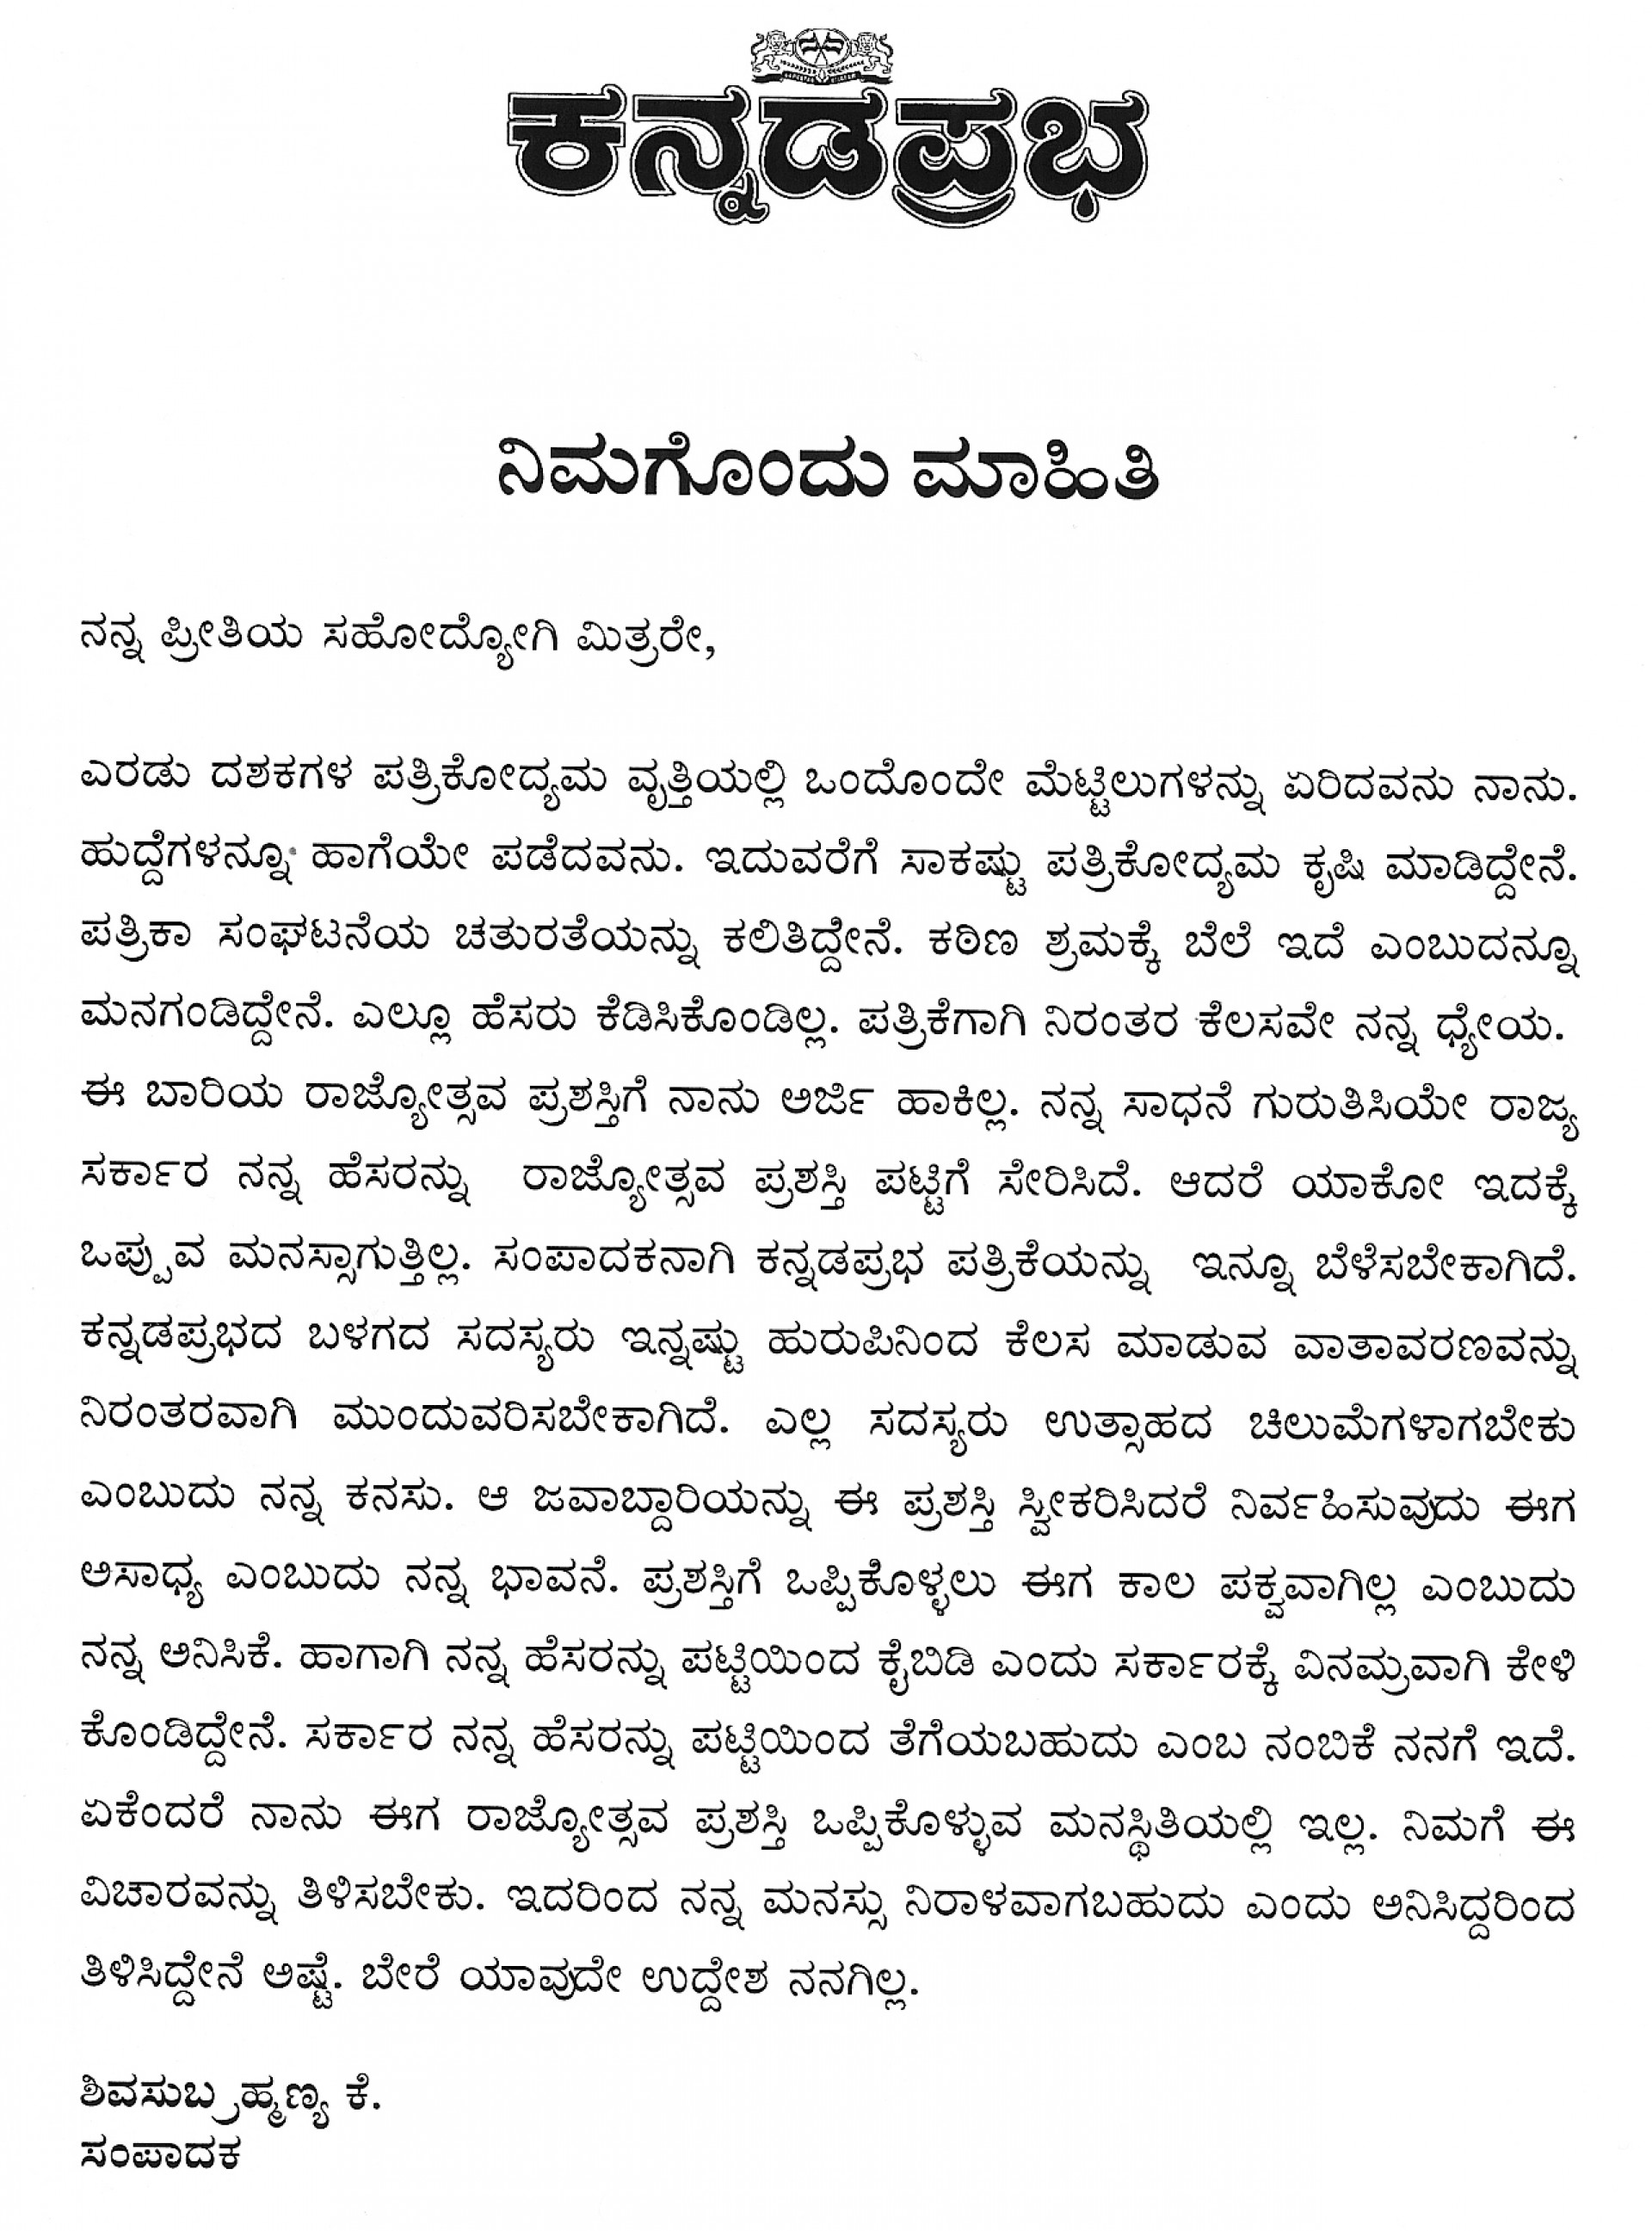 011 Essay Example Water Conservation On How To Write An About Myself Soil And Exampl Phenomenal Rainwater In Hindi Kannada 1920